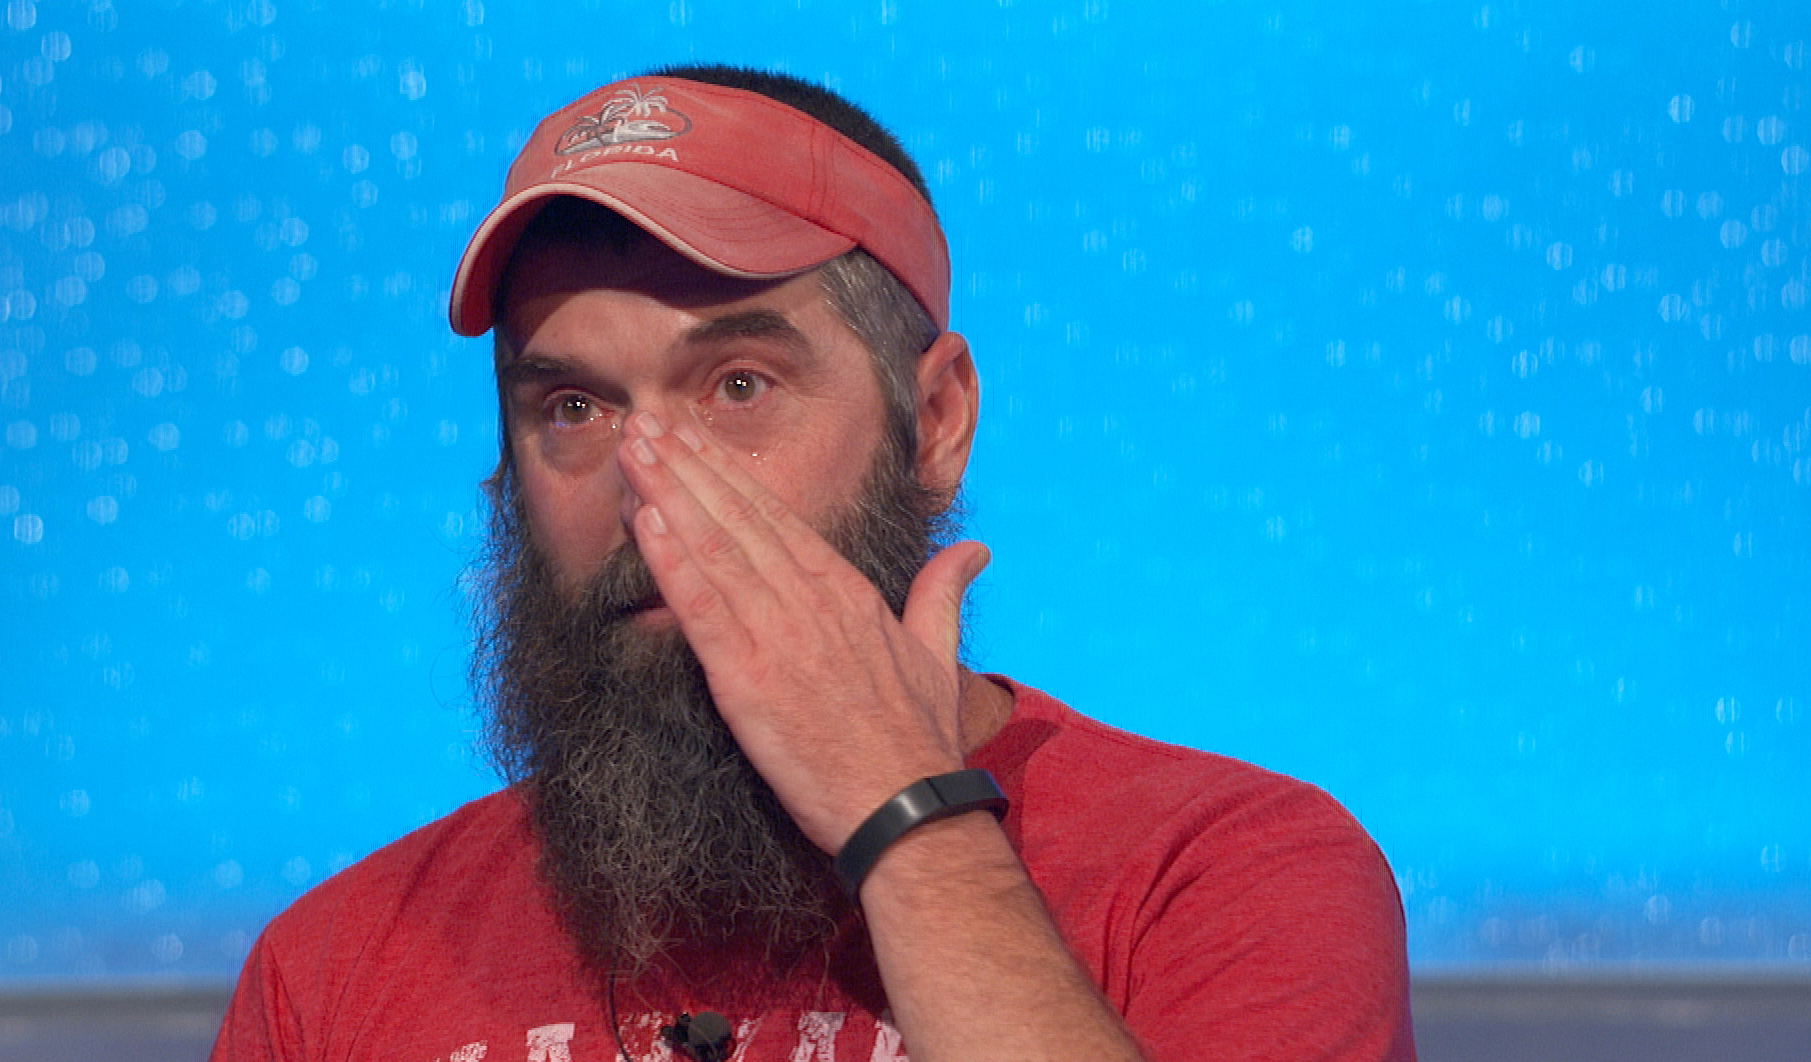 Donny gets emotional after his eviction